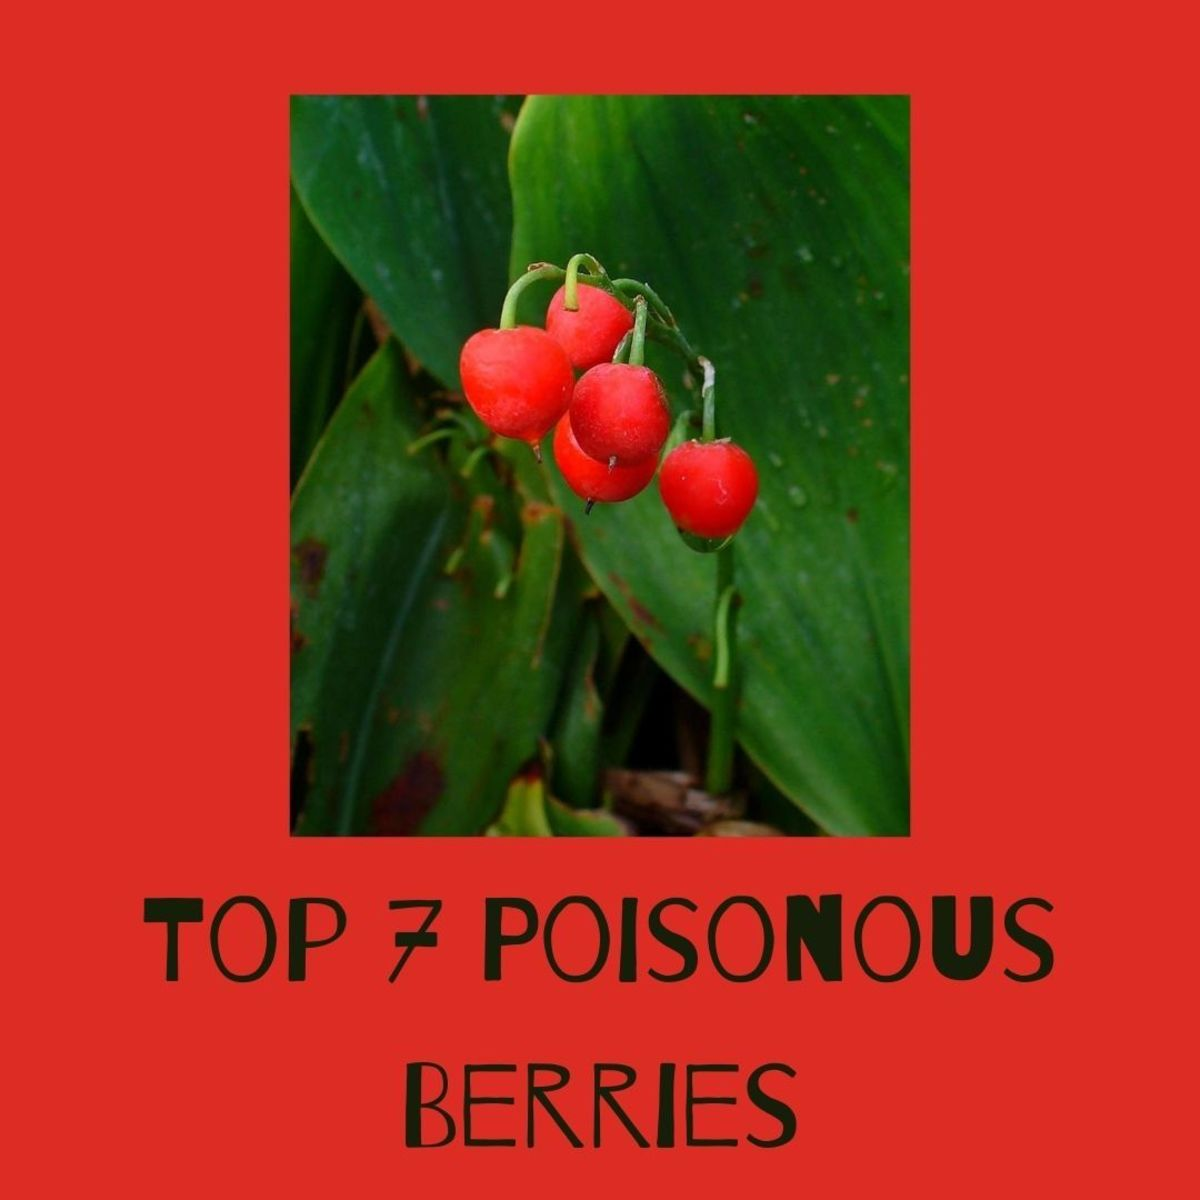 7 Most Poisonous Berries (With Photos and Descriptions)